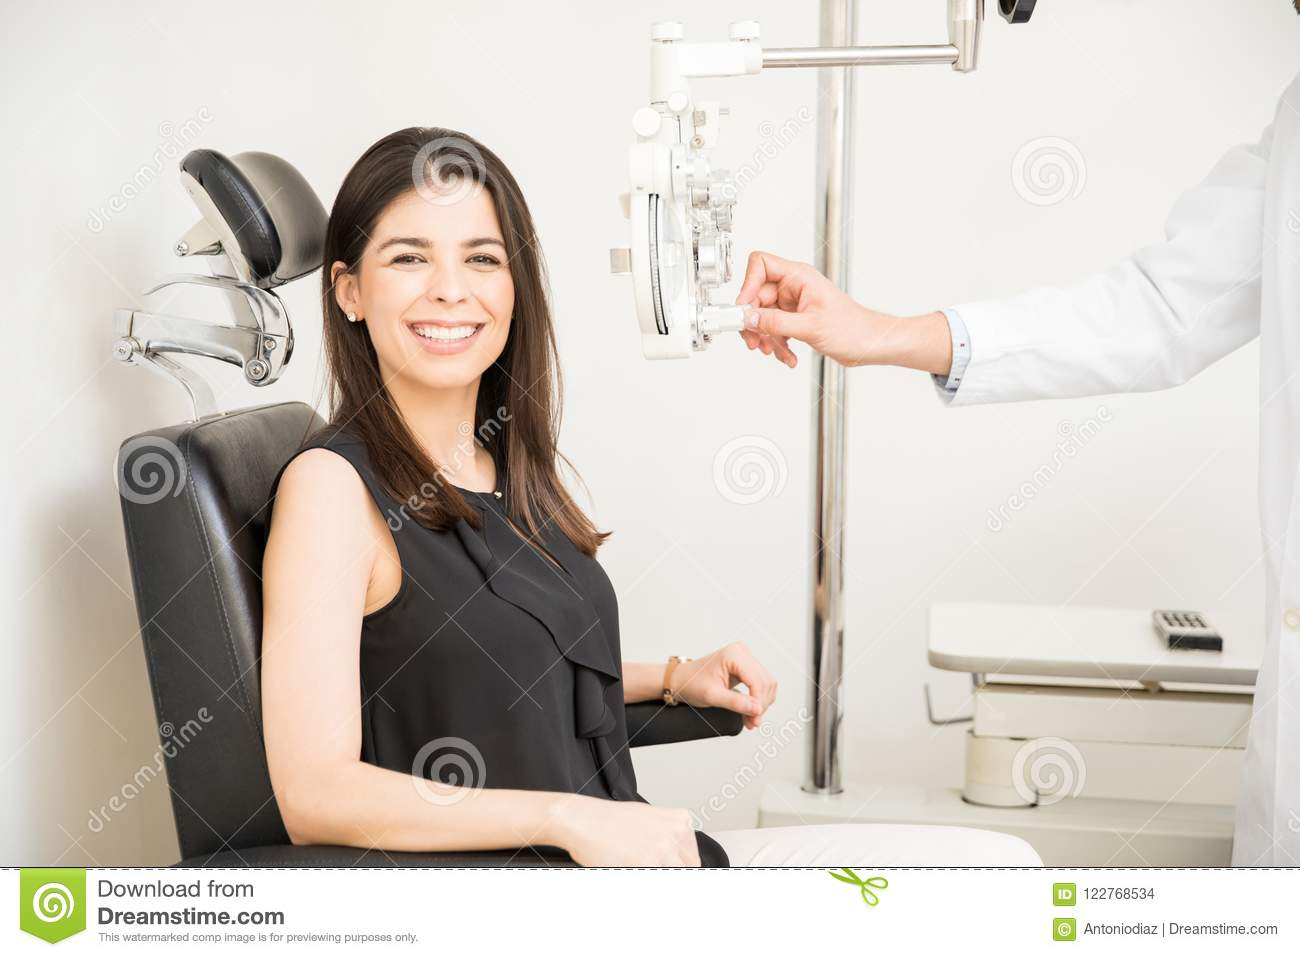 8aea3b6b8bd0 Portrait of happy young women sitting behind phoropter during eye exam while  looking at camera and male doctor hands adjusting panel in clinic